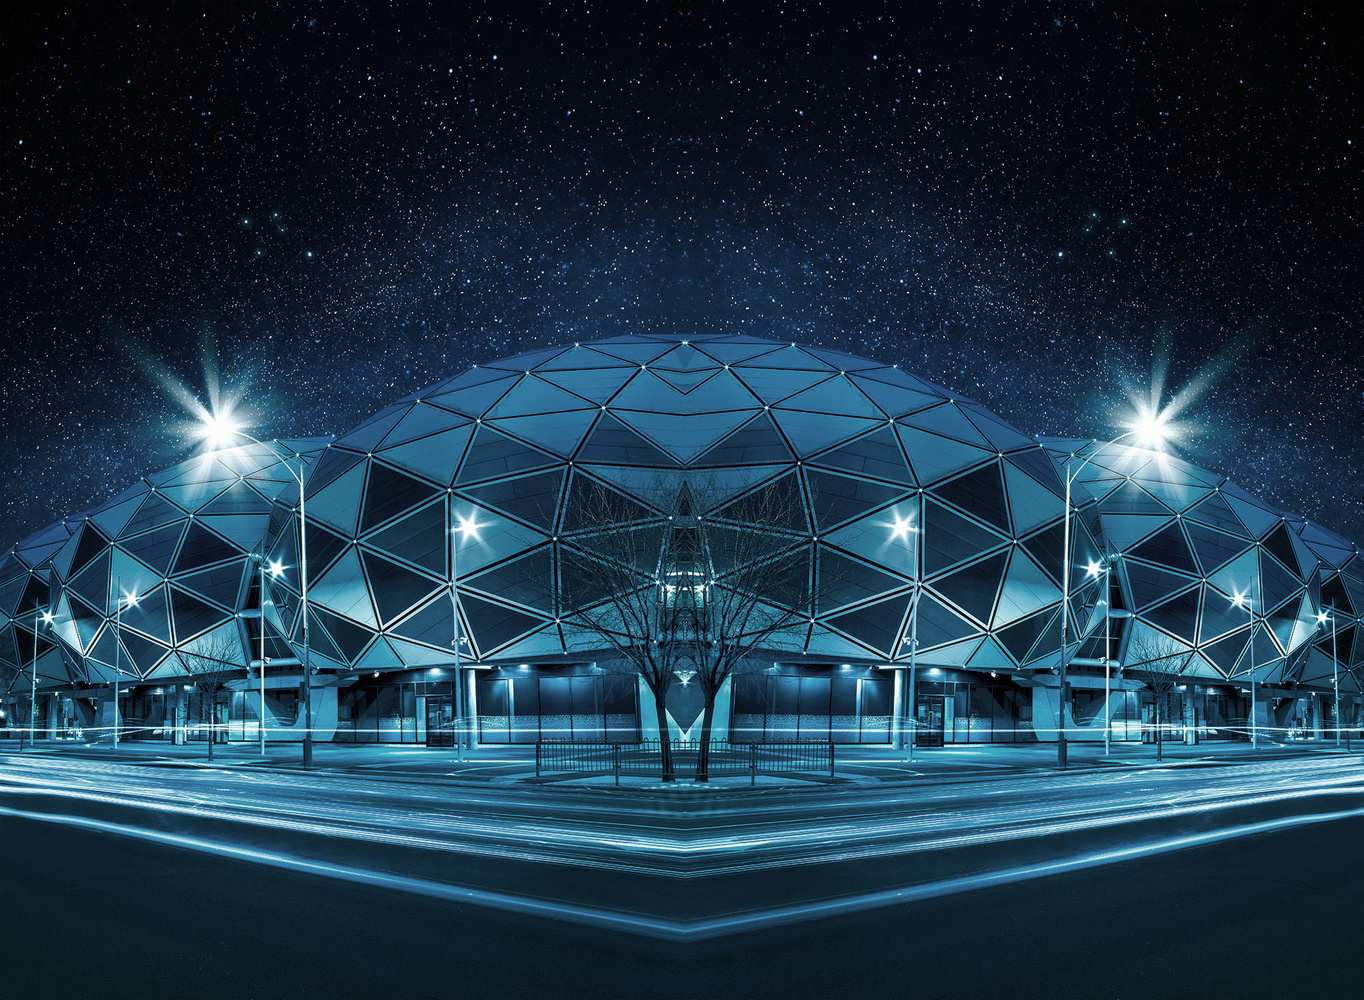 AAMI park by Kristian Gehradte